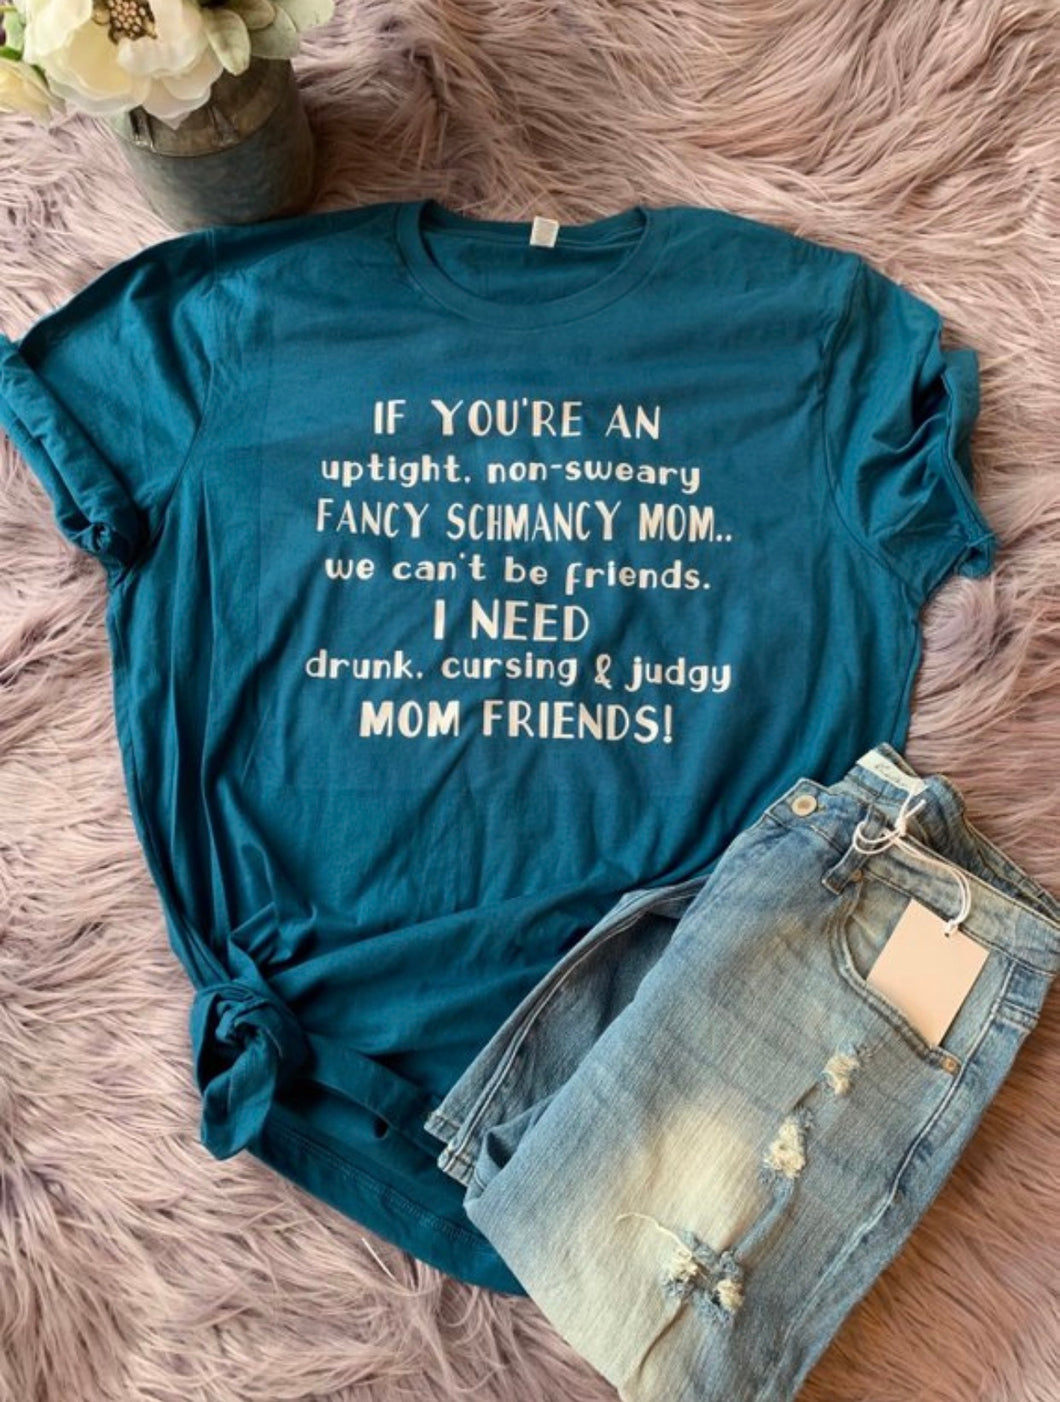 If youre an uptight non sweary fancy schmancy mom we cant be friends i need drunk cursing judgy mom friends funny mom life tee - Mavictoria Designs Hot Press Express